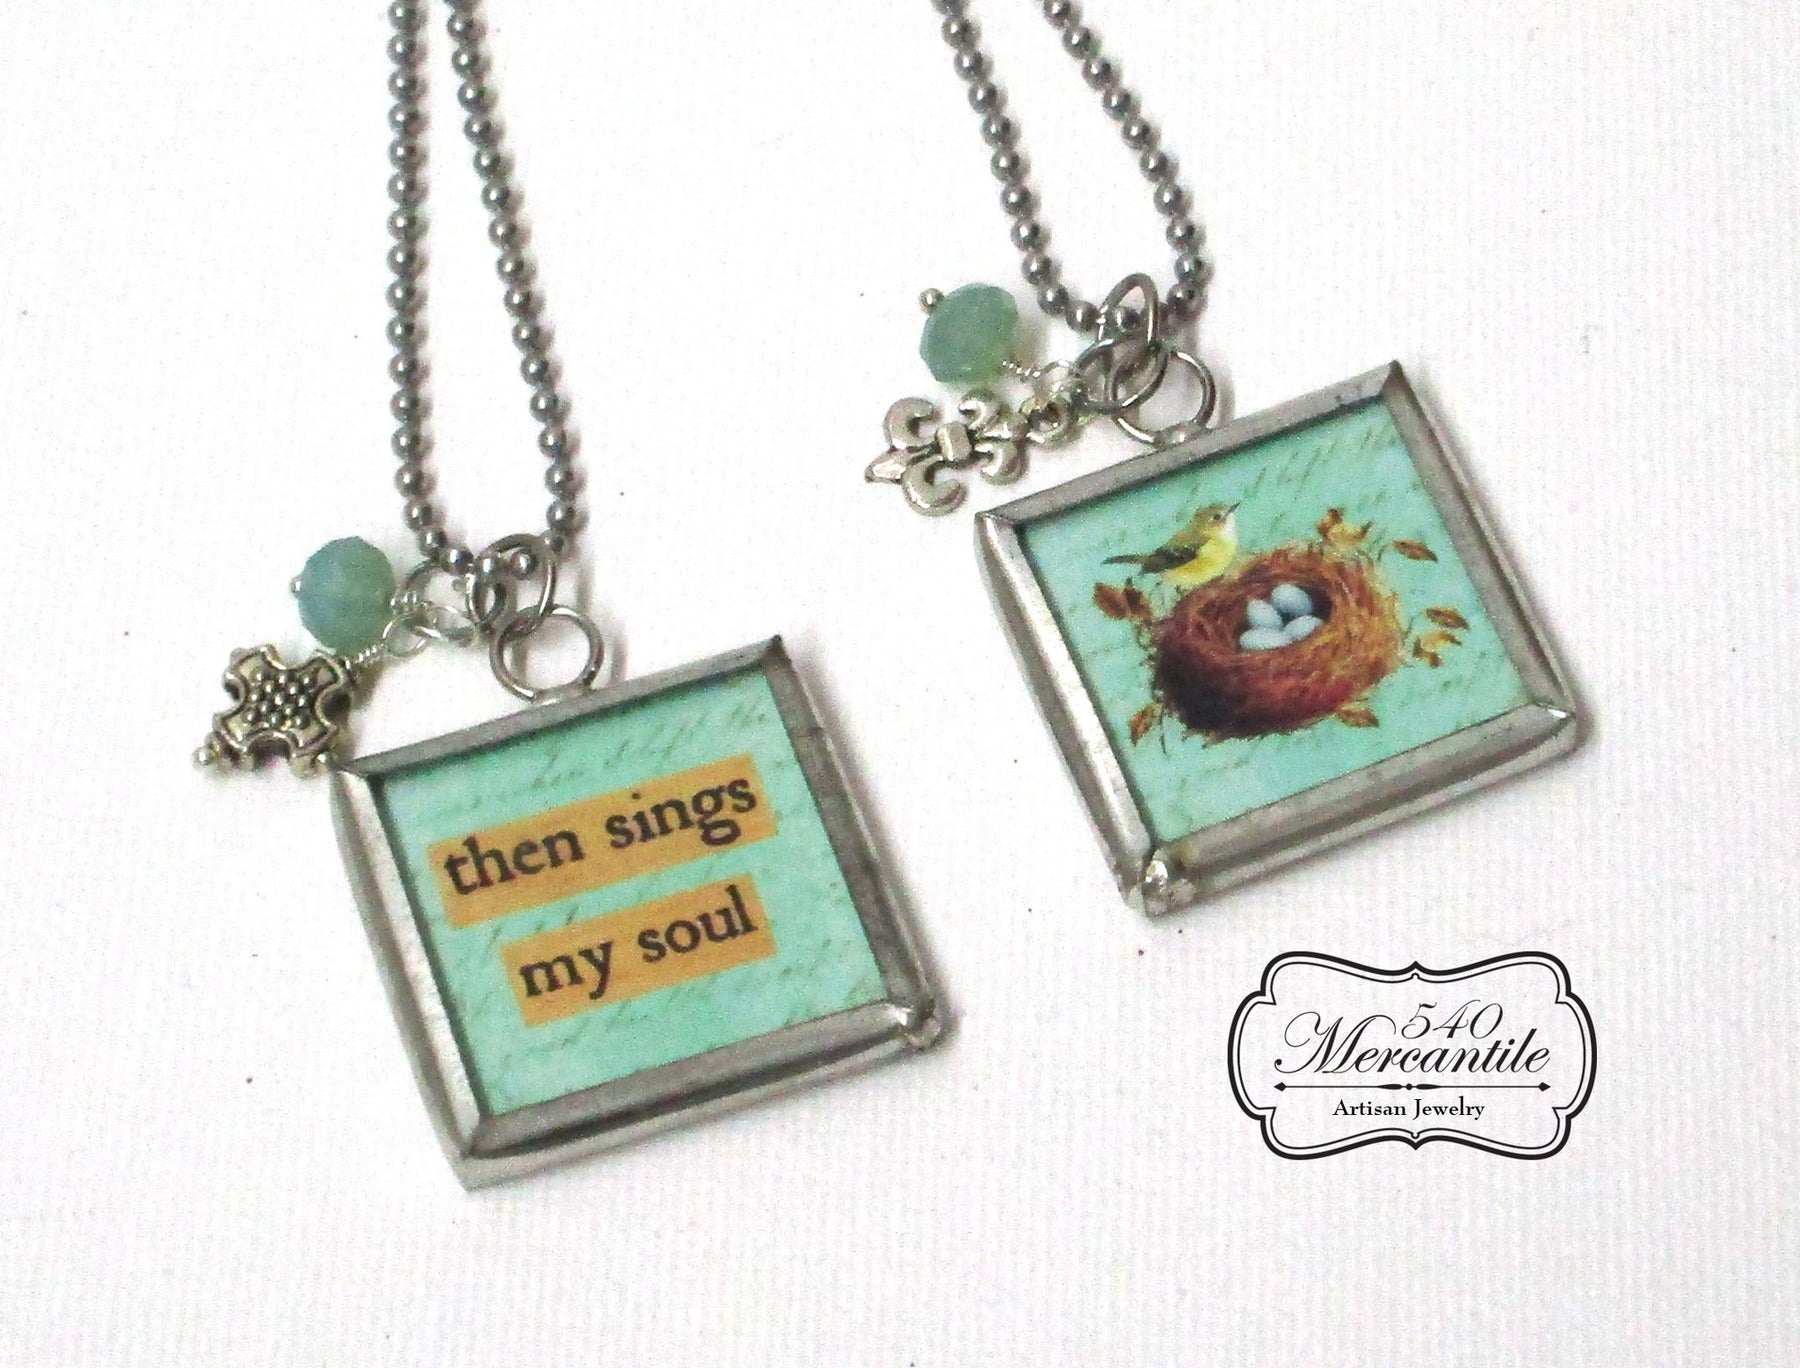 Then Sings My Soul Charm Silver Necklace